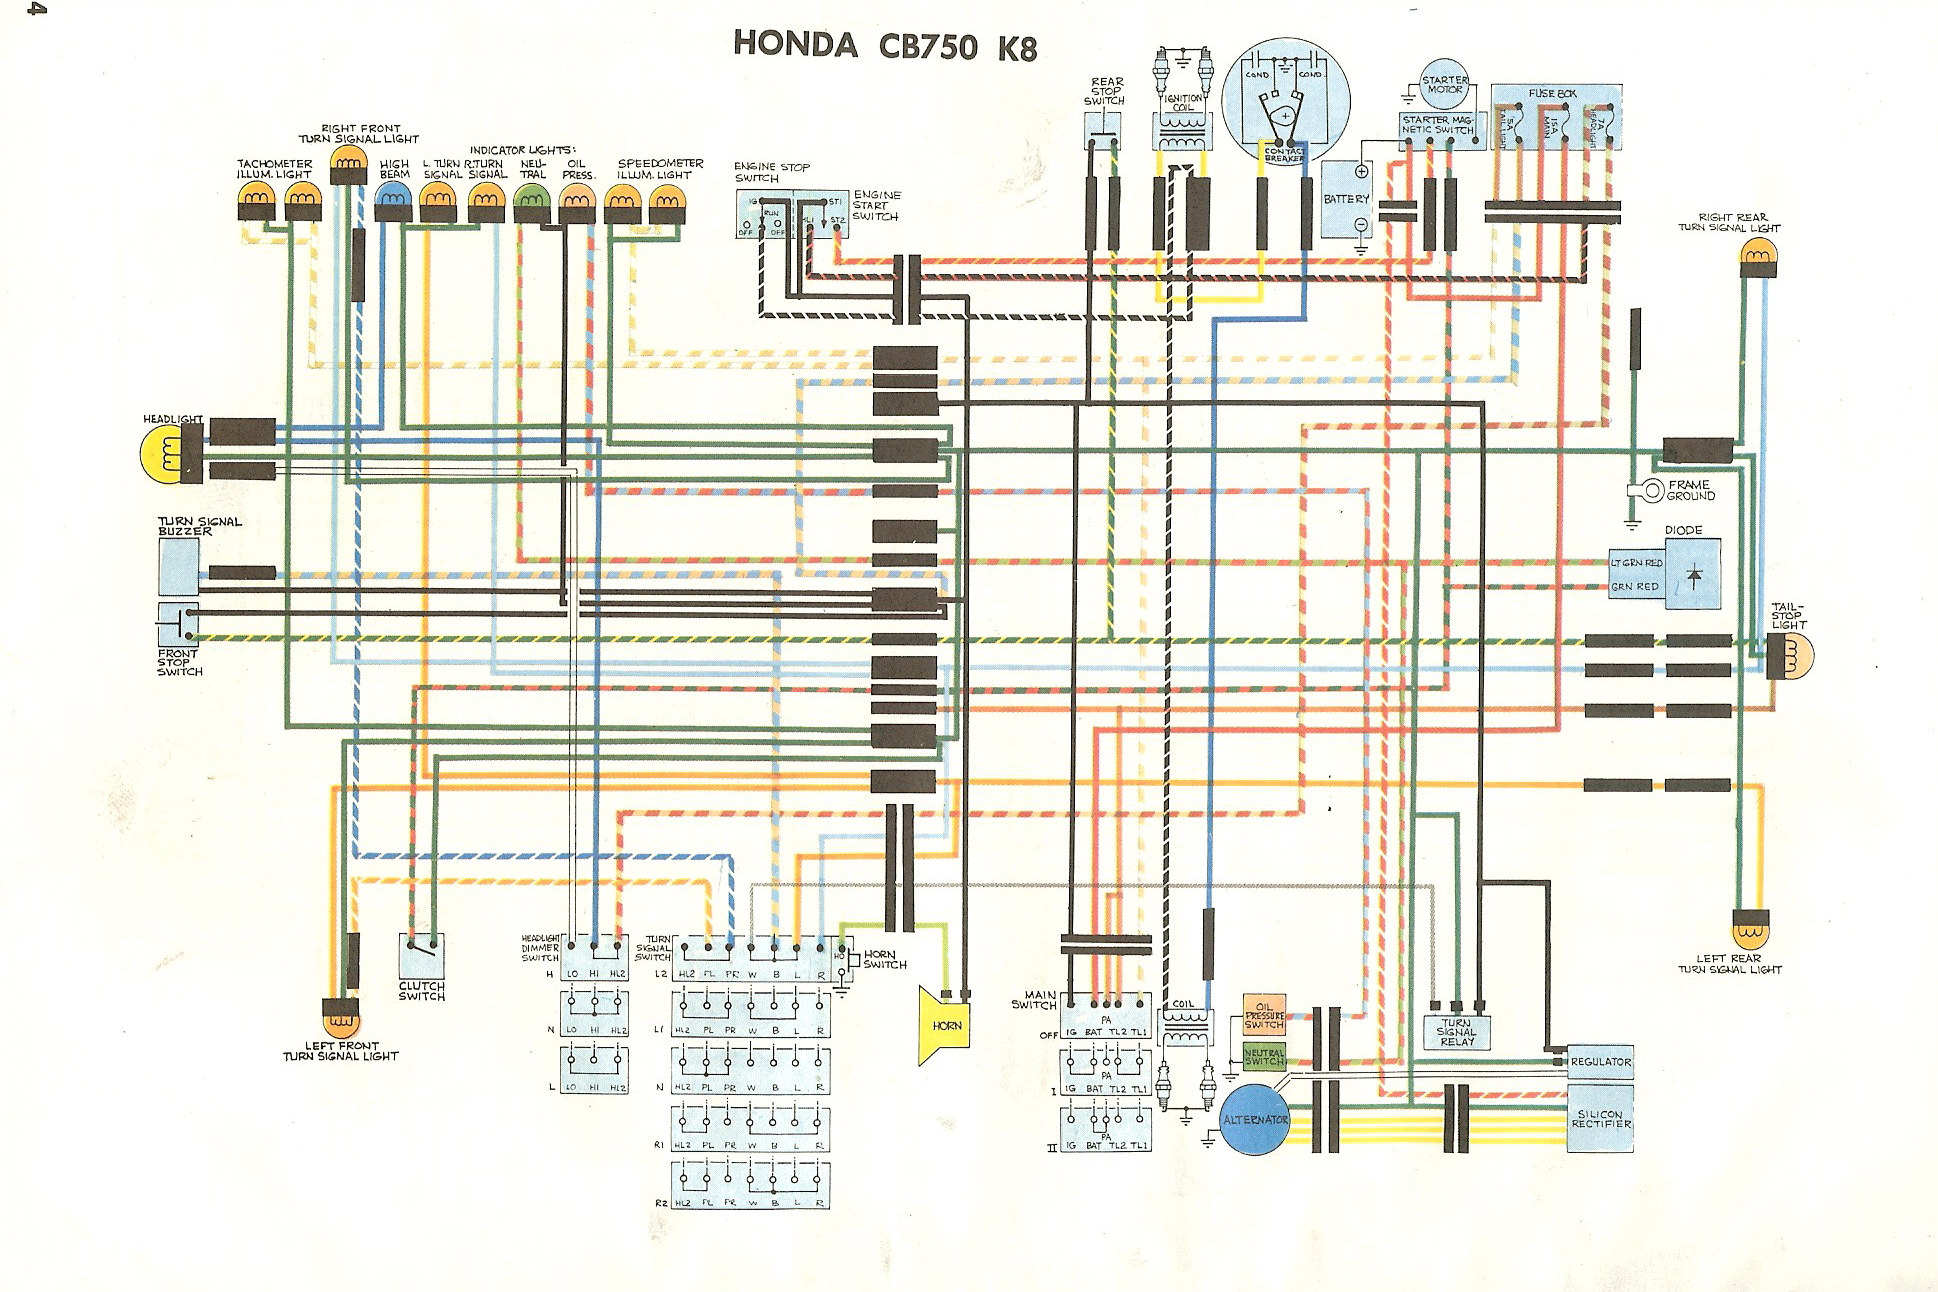 WD750K8 honda cb750 wiring diagram 1970 honda cb750 wiring diagram \u2022 free CB 750 Mechanical Tachometer at bakdesigns.co